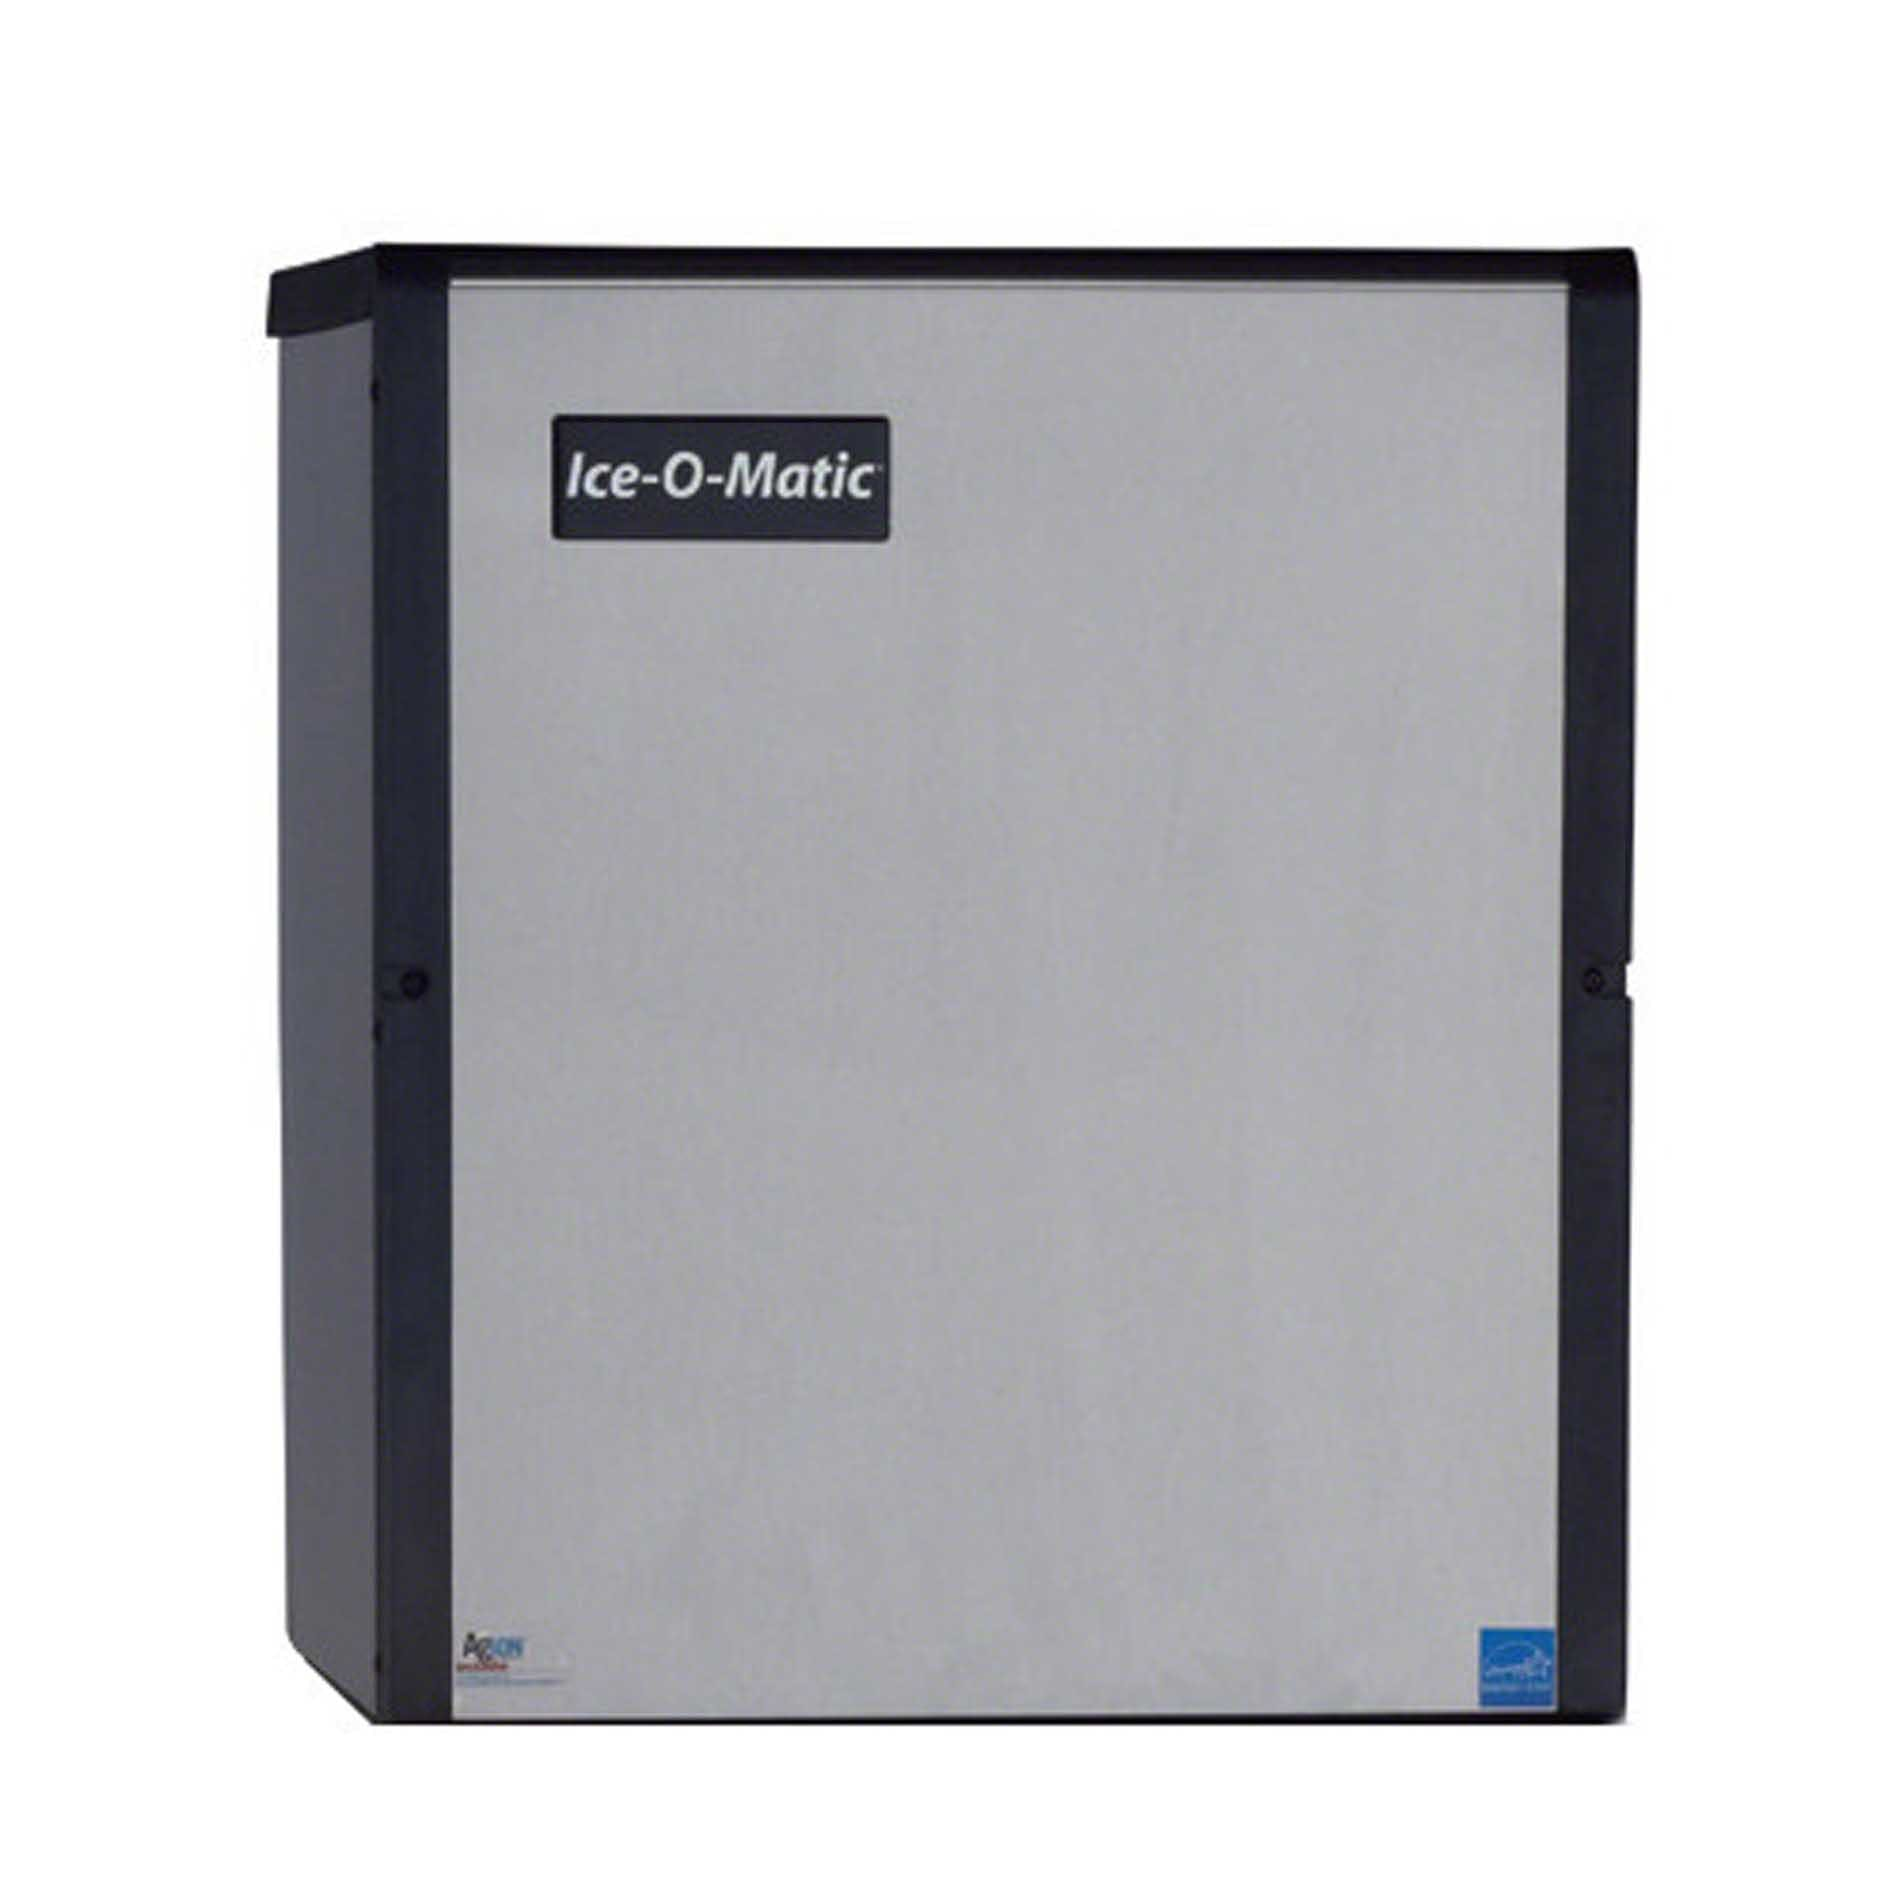 Ice-O-Matic - ICE0926 930 lb. Cube Ice Machine Ice machine sold by Food Service Warehouse